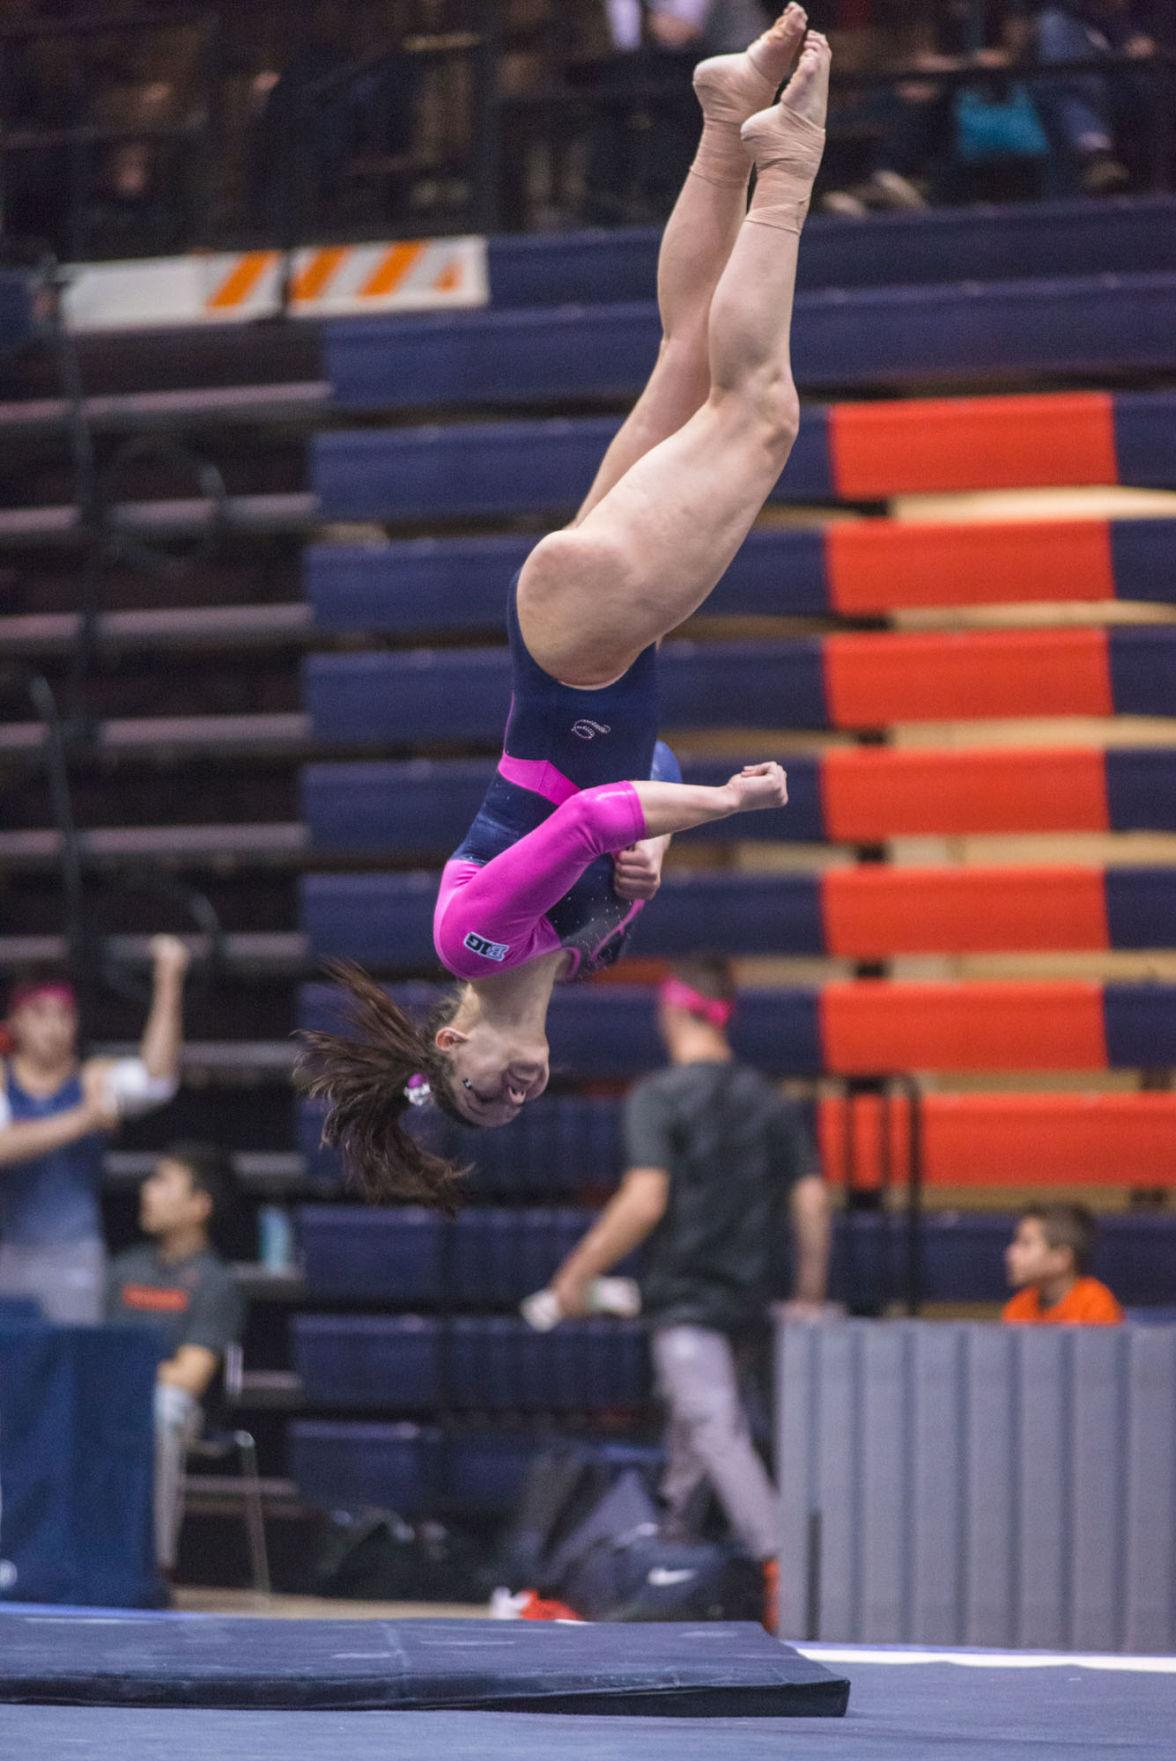 Illinois' Kelsi Eberly performs a floor routine during the match against Penn State at Huff Hall on Feb. 1.